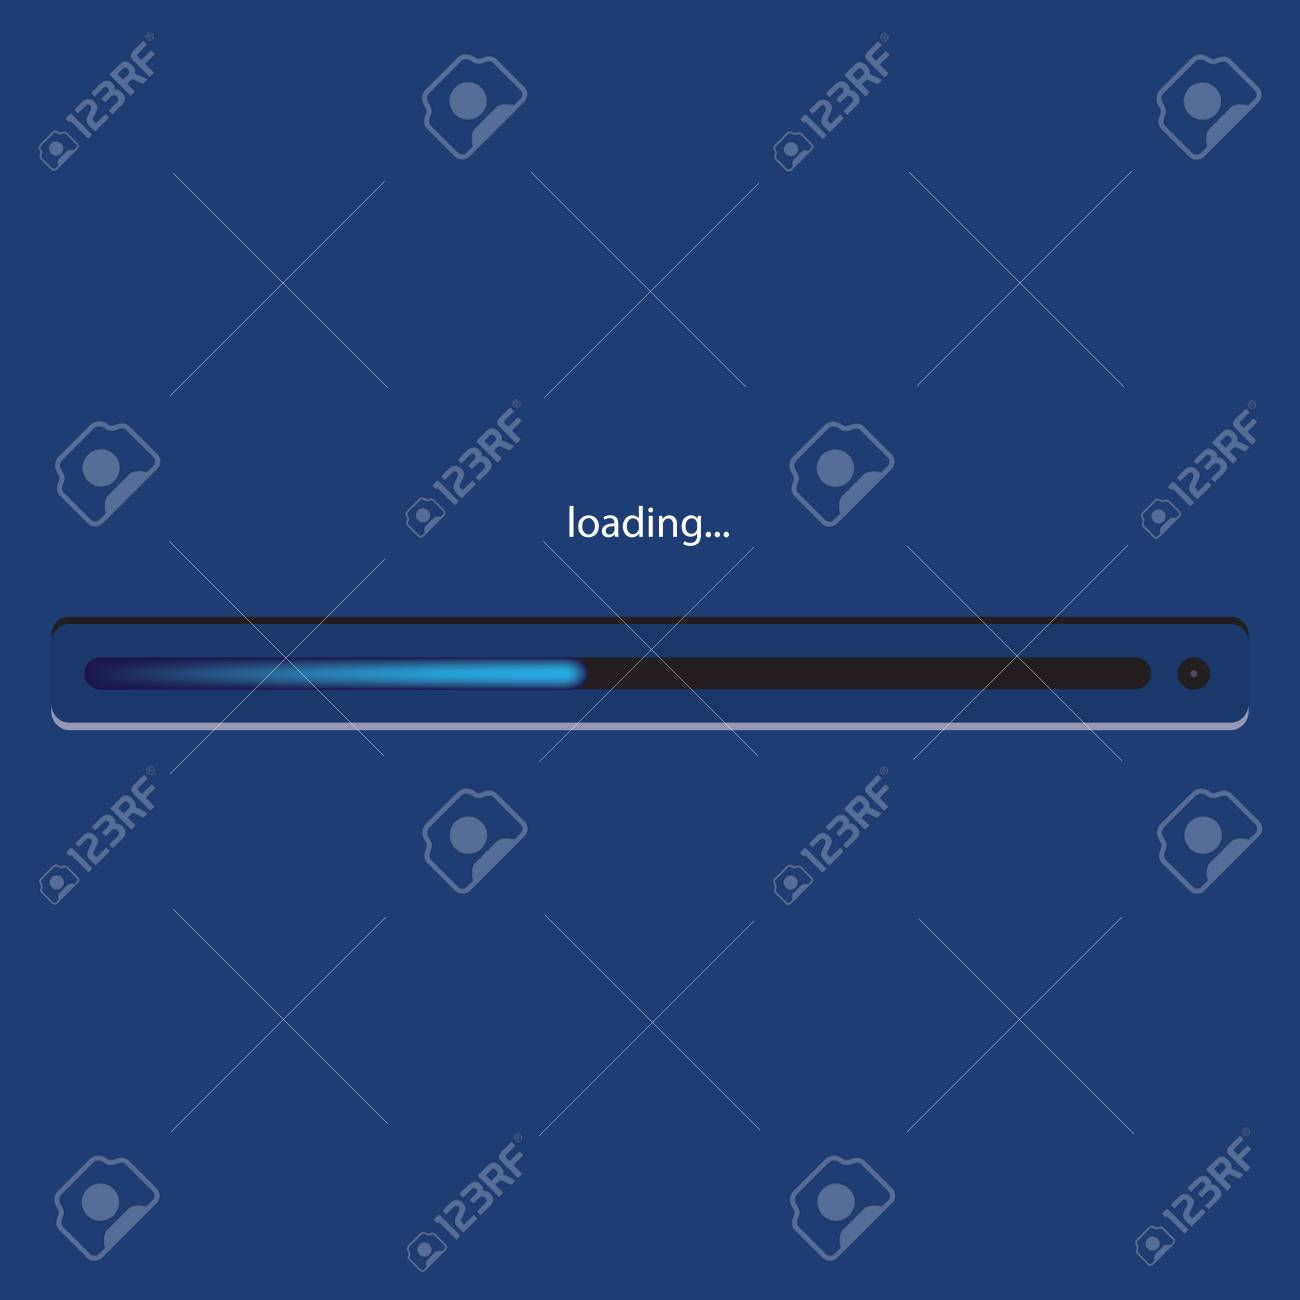 Basic loading panel with standard background color Windows